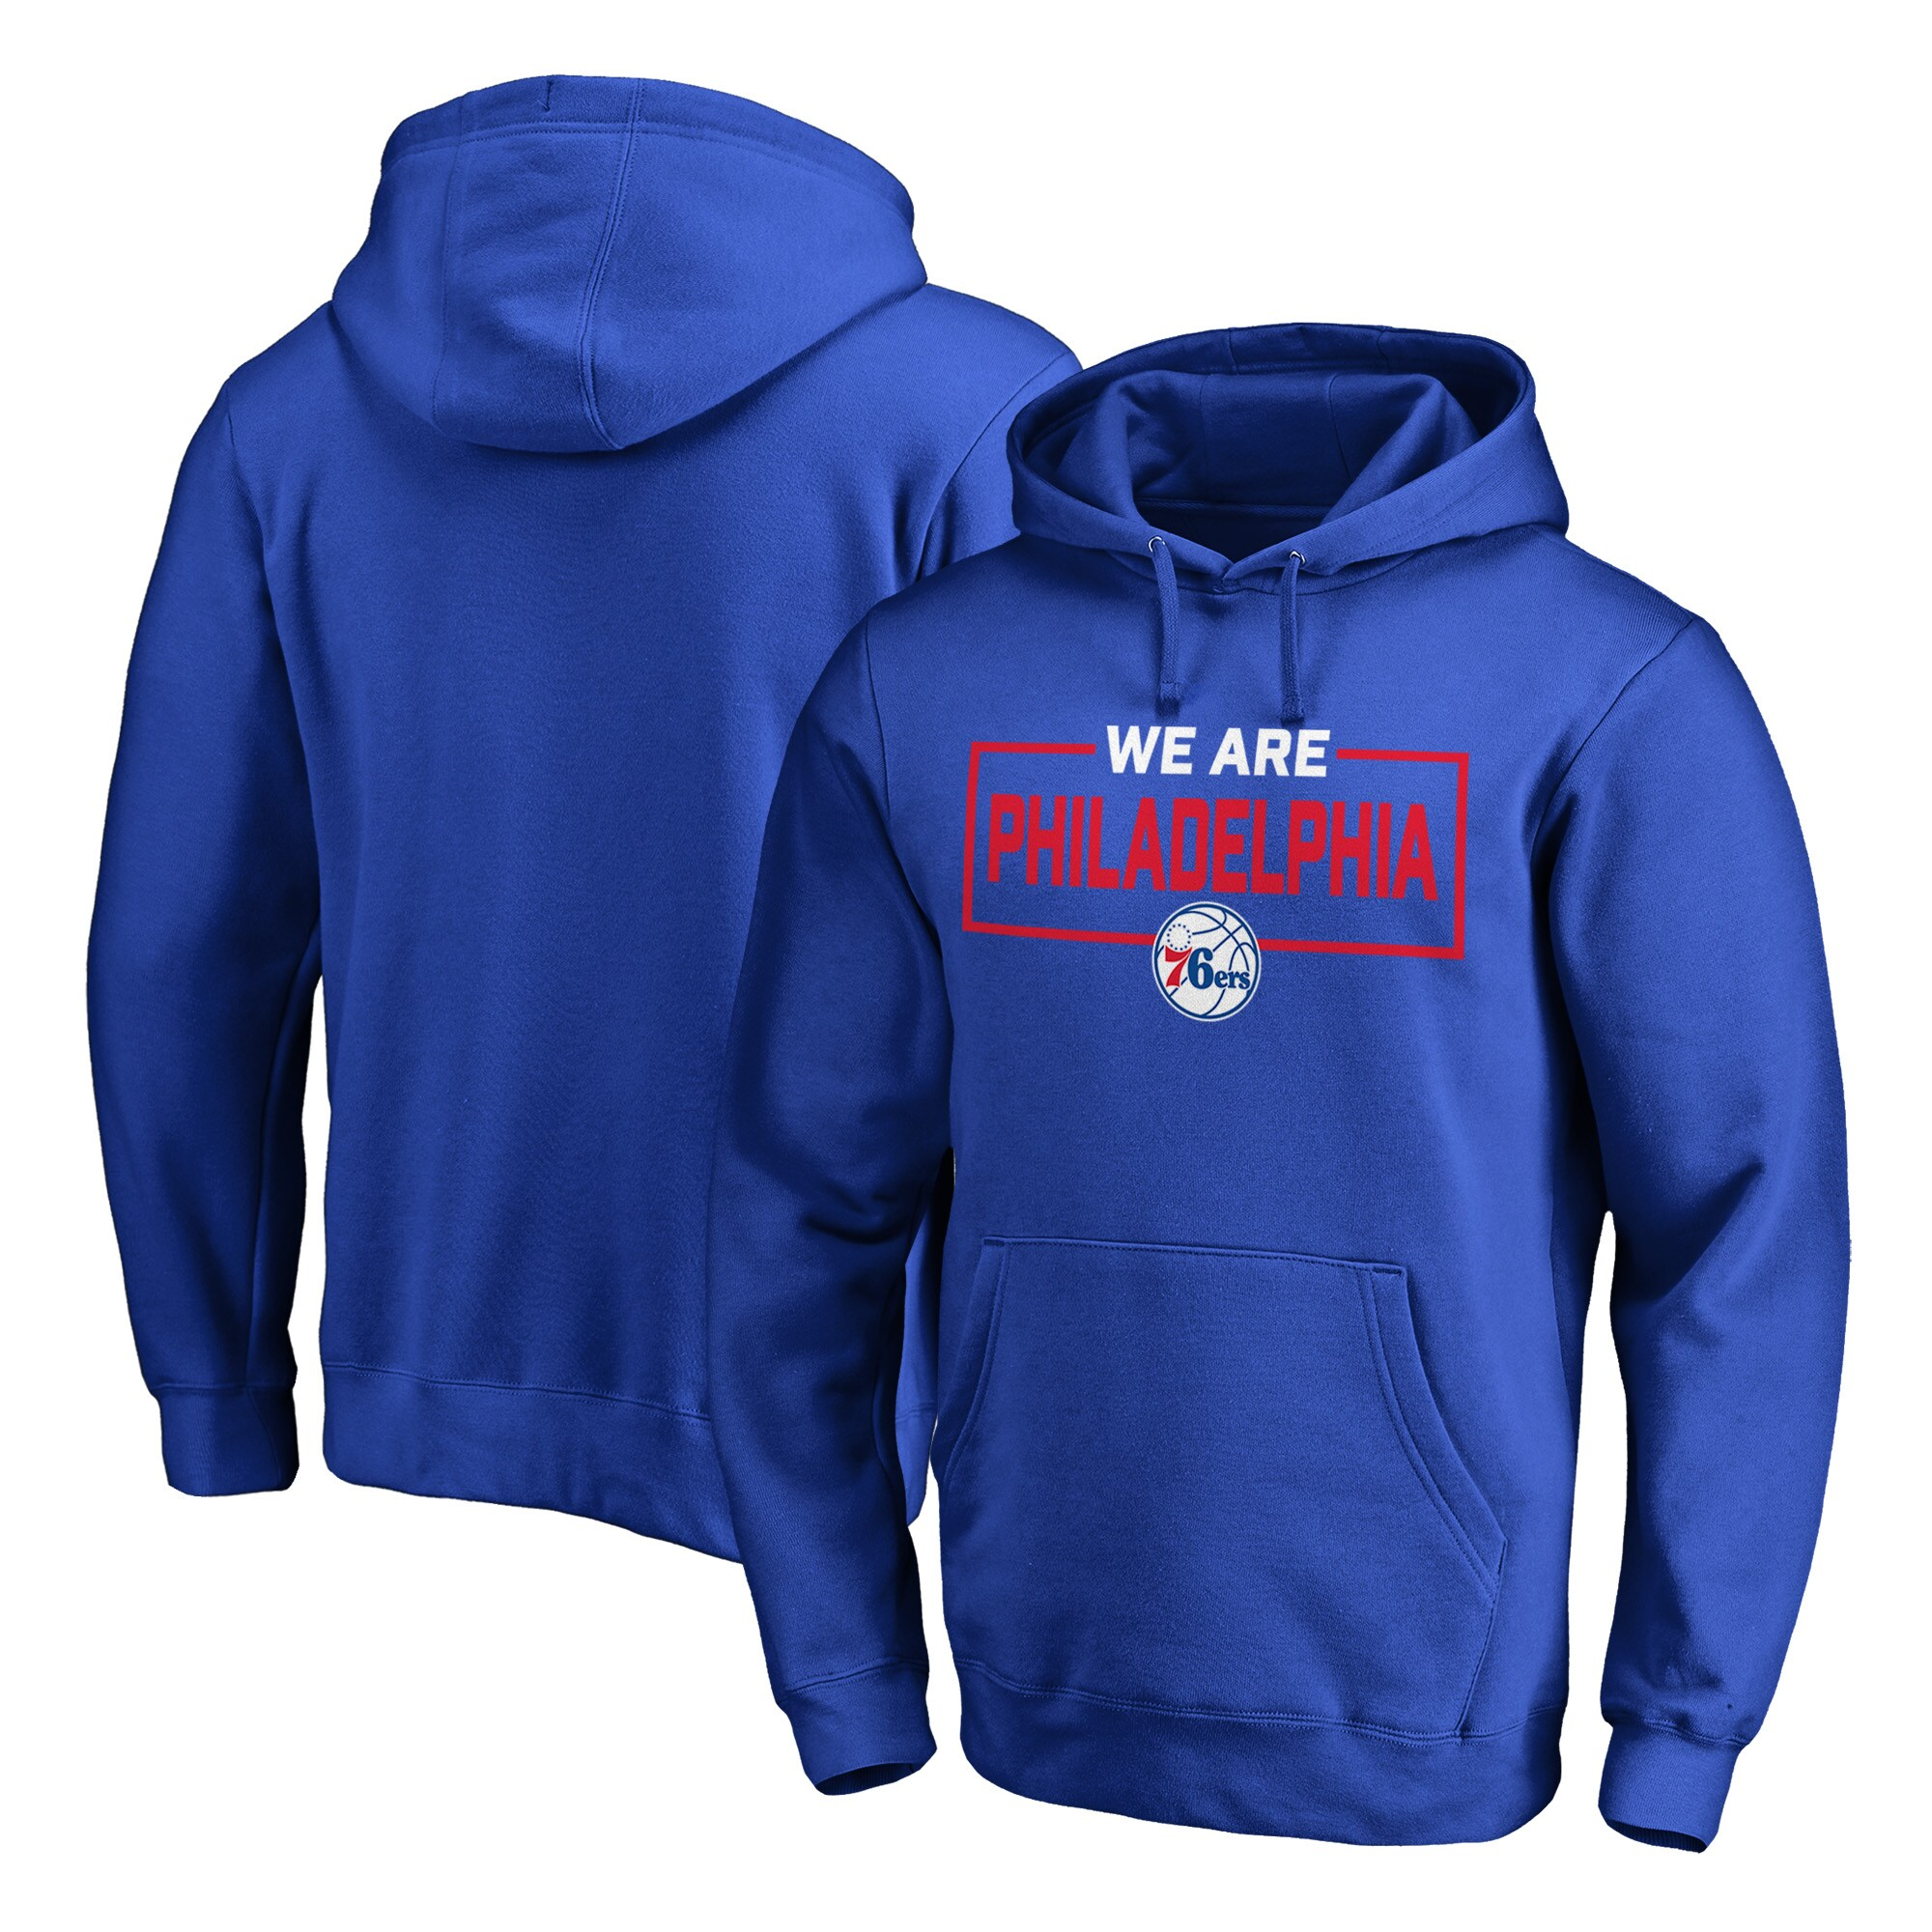 Philadelphia 76ers Fanatics Branded We Are Iconic Collection Pullover Hoodie - Royal